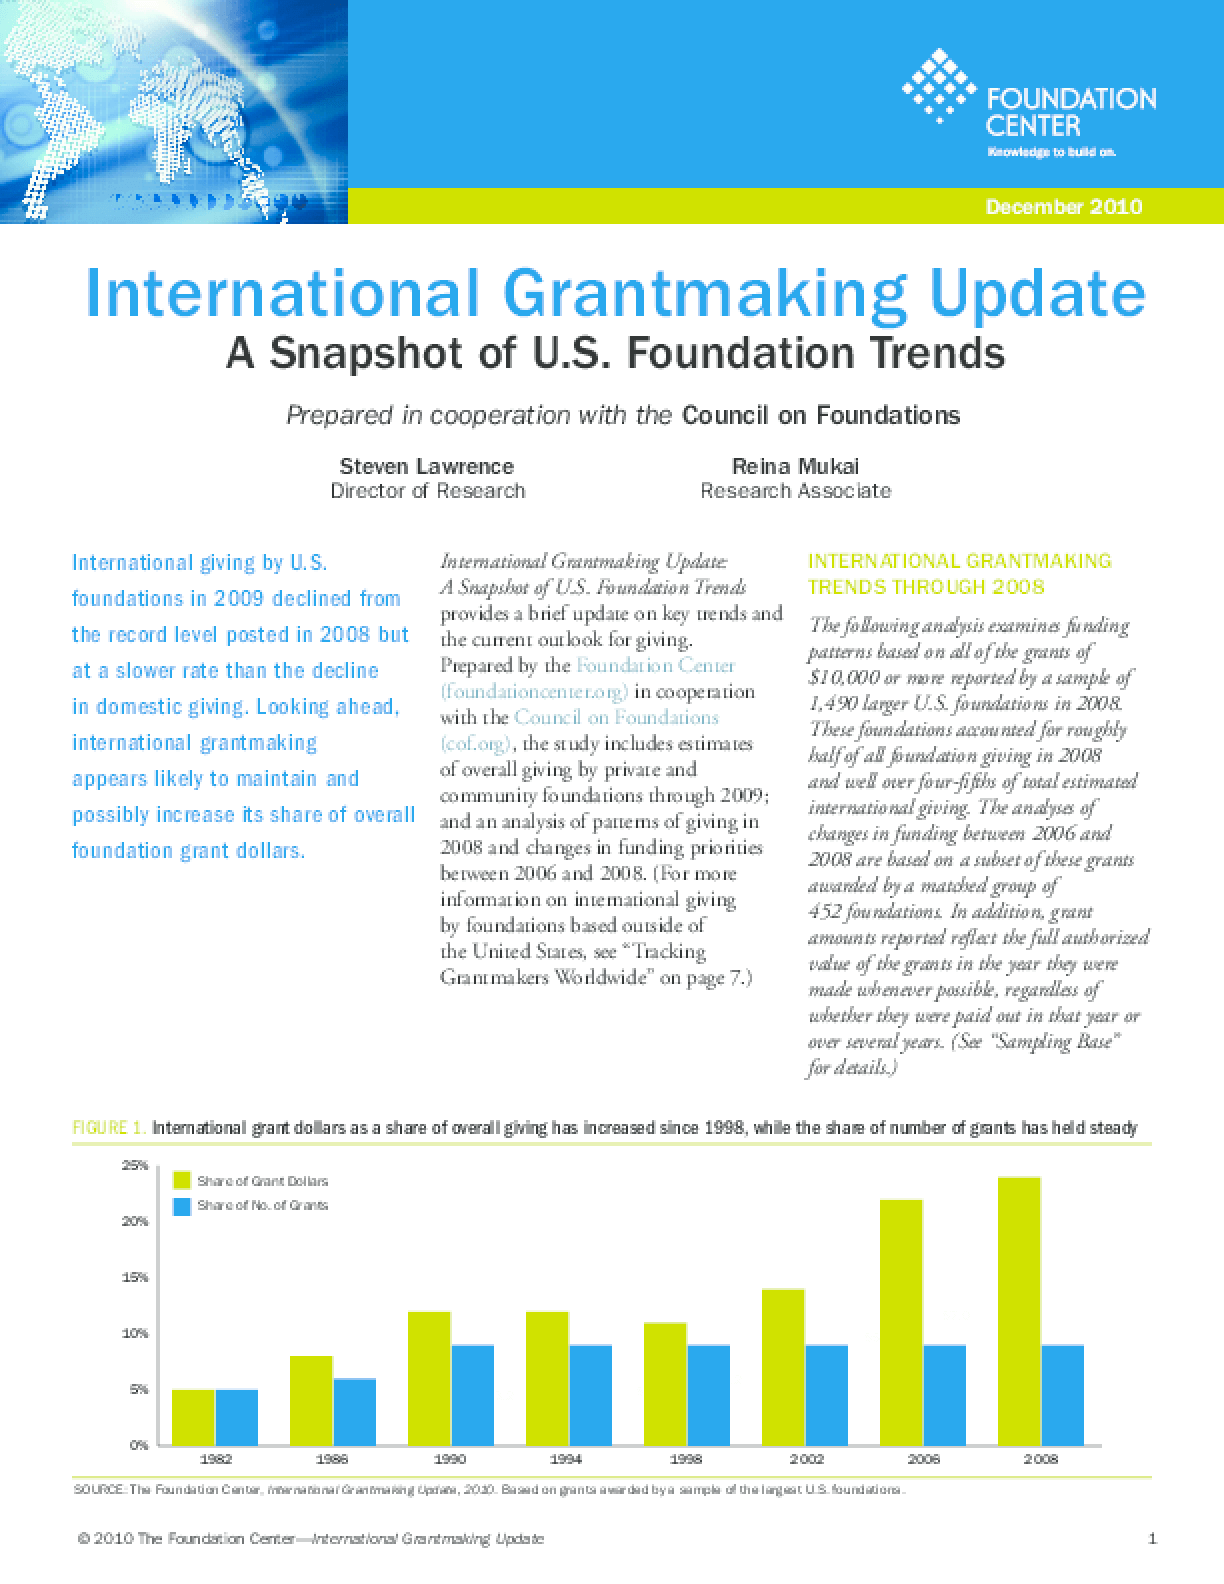 International Grantmaking Update: A Snapshot of U.S. Foundation Trends